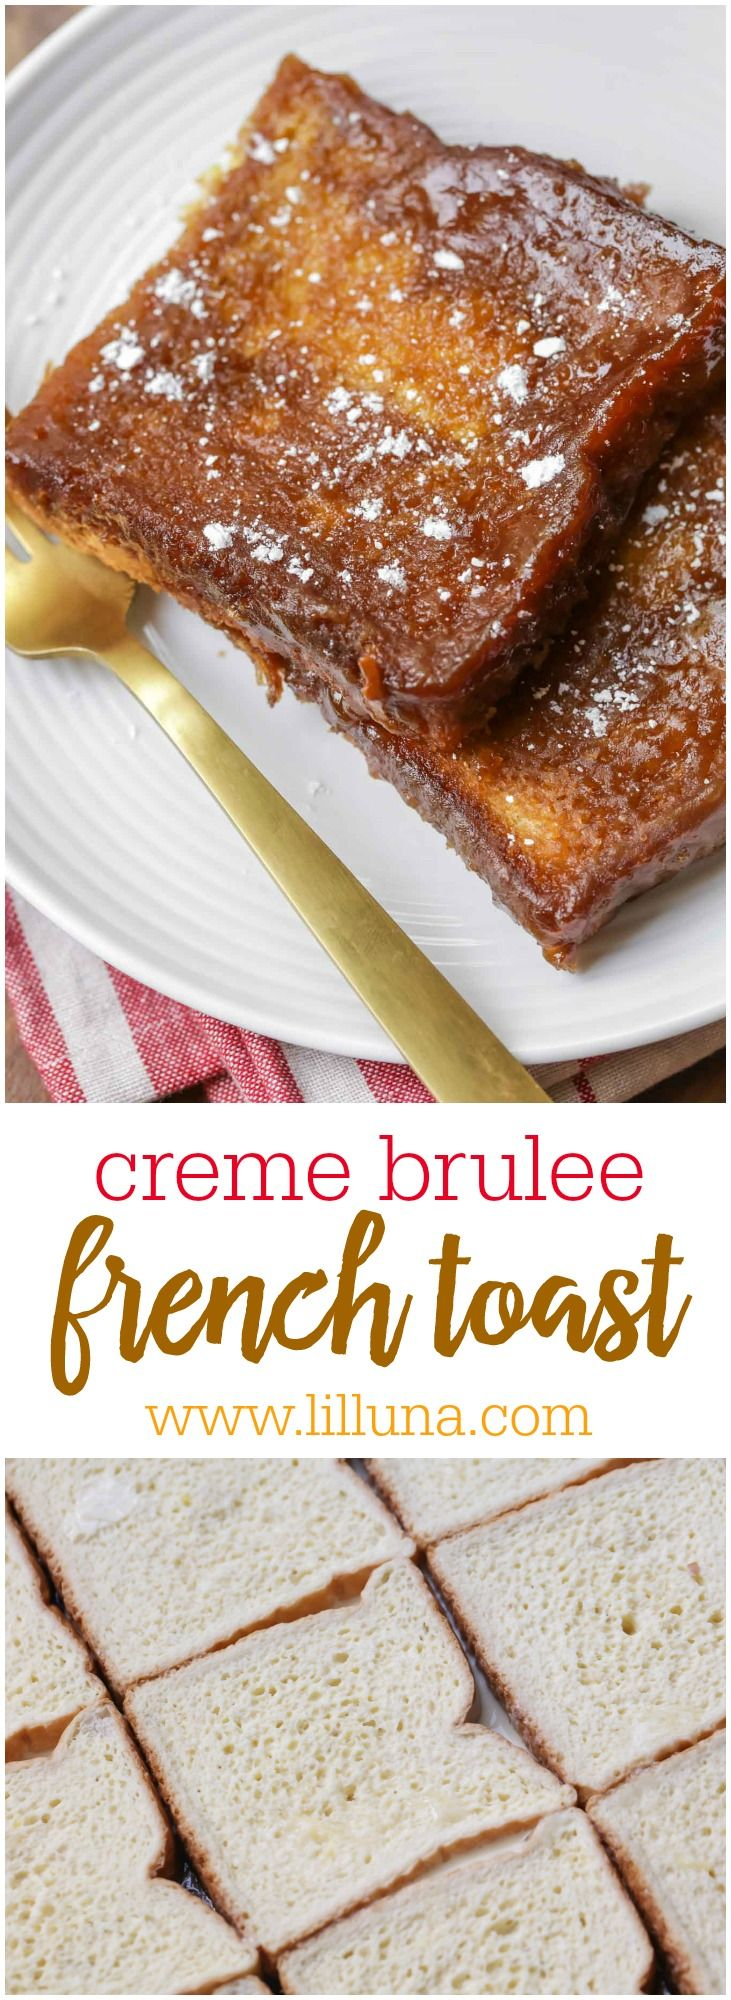 Creme Brulee French Toast - delicious overnight French Toast recipe that has a tasty caramel coating on one side!